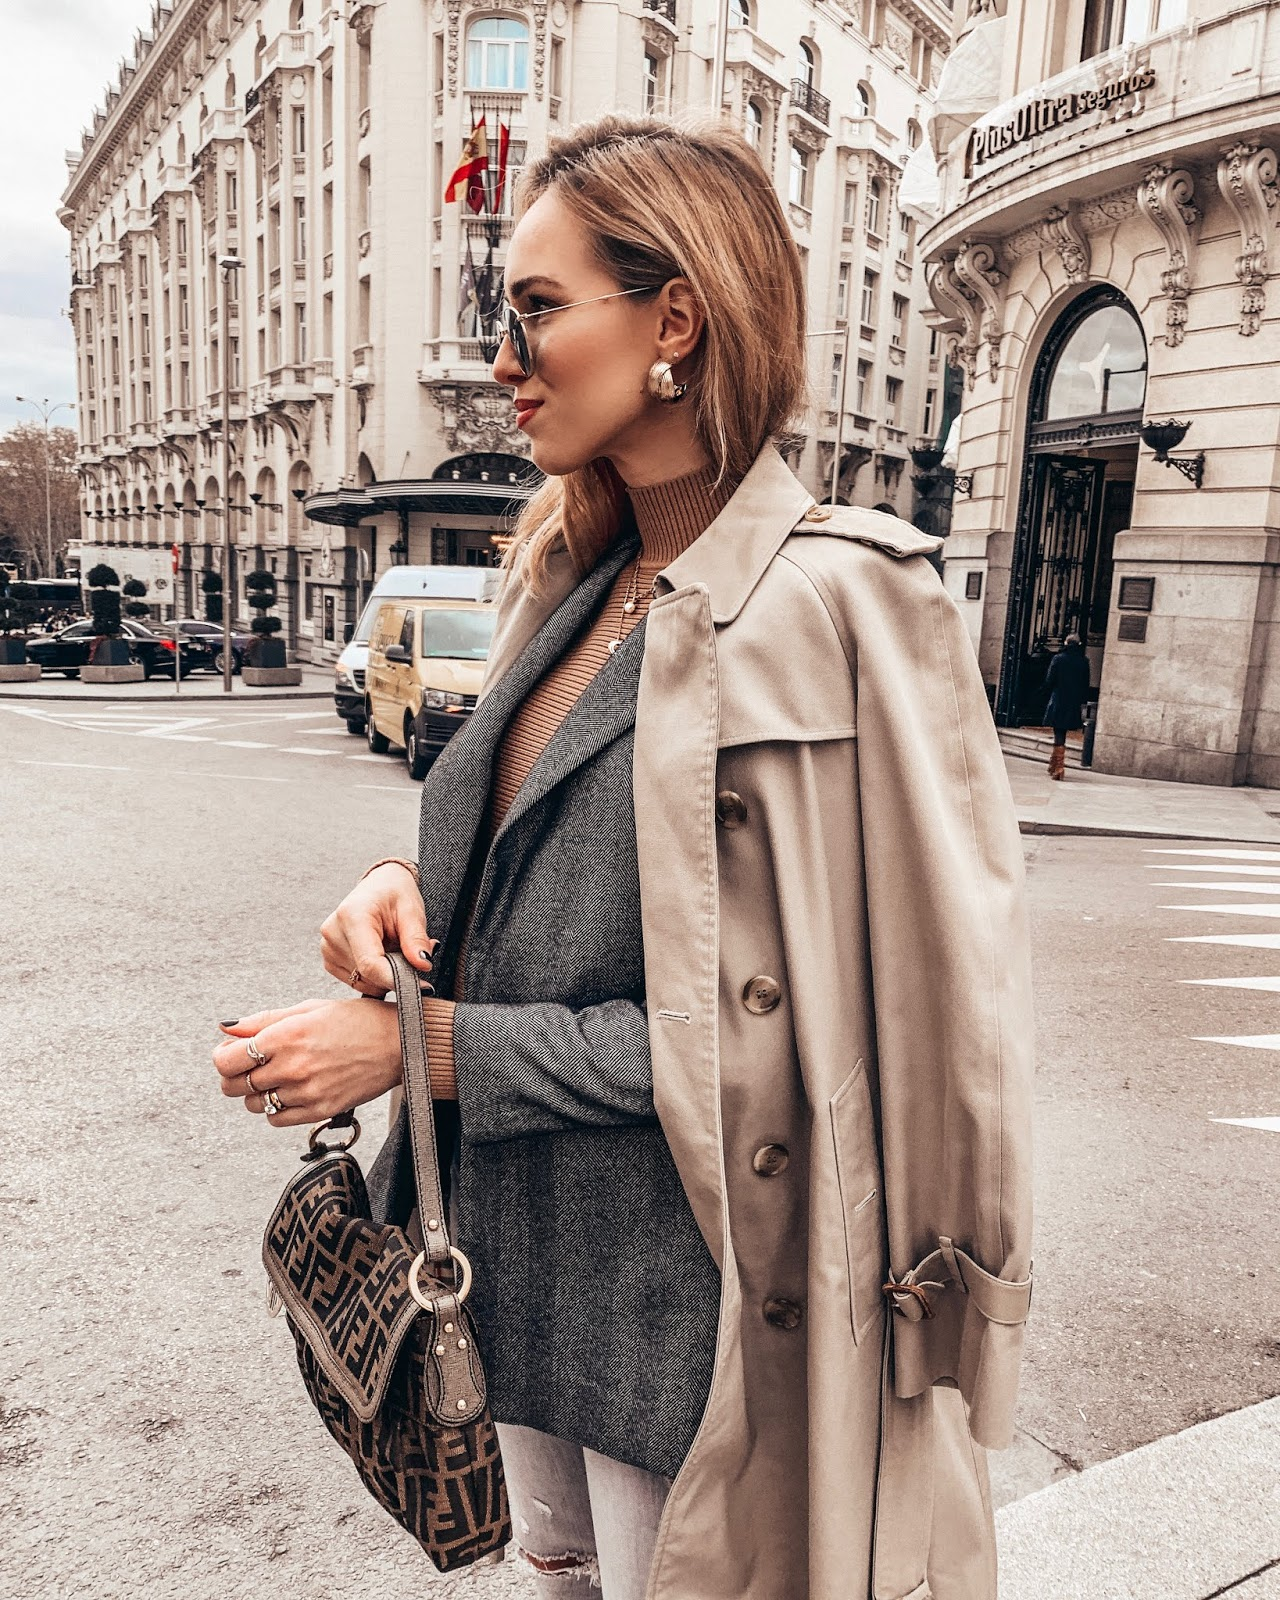 burberry trench coat over blazer outfit